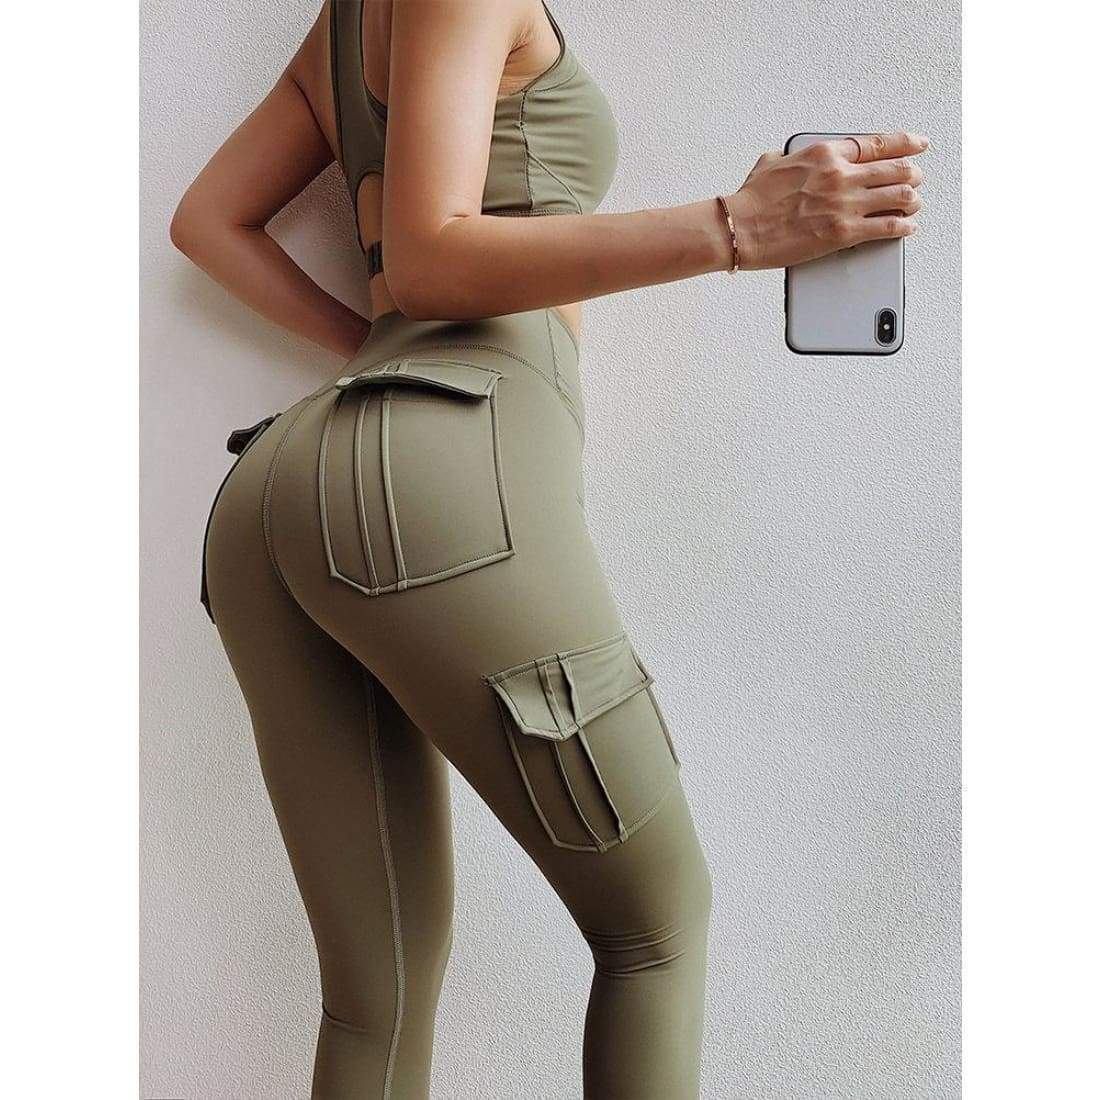 Sculpt cargo leggings - high waist pockets yoga sport workout running